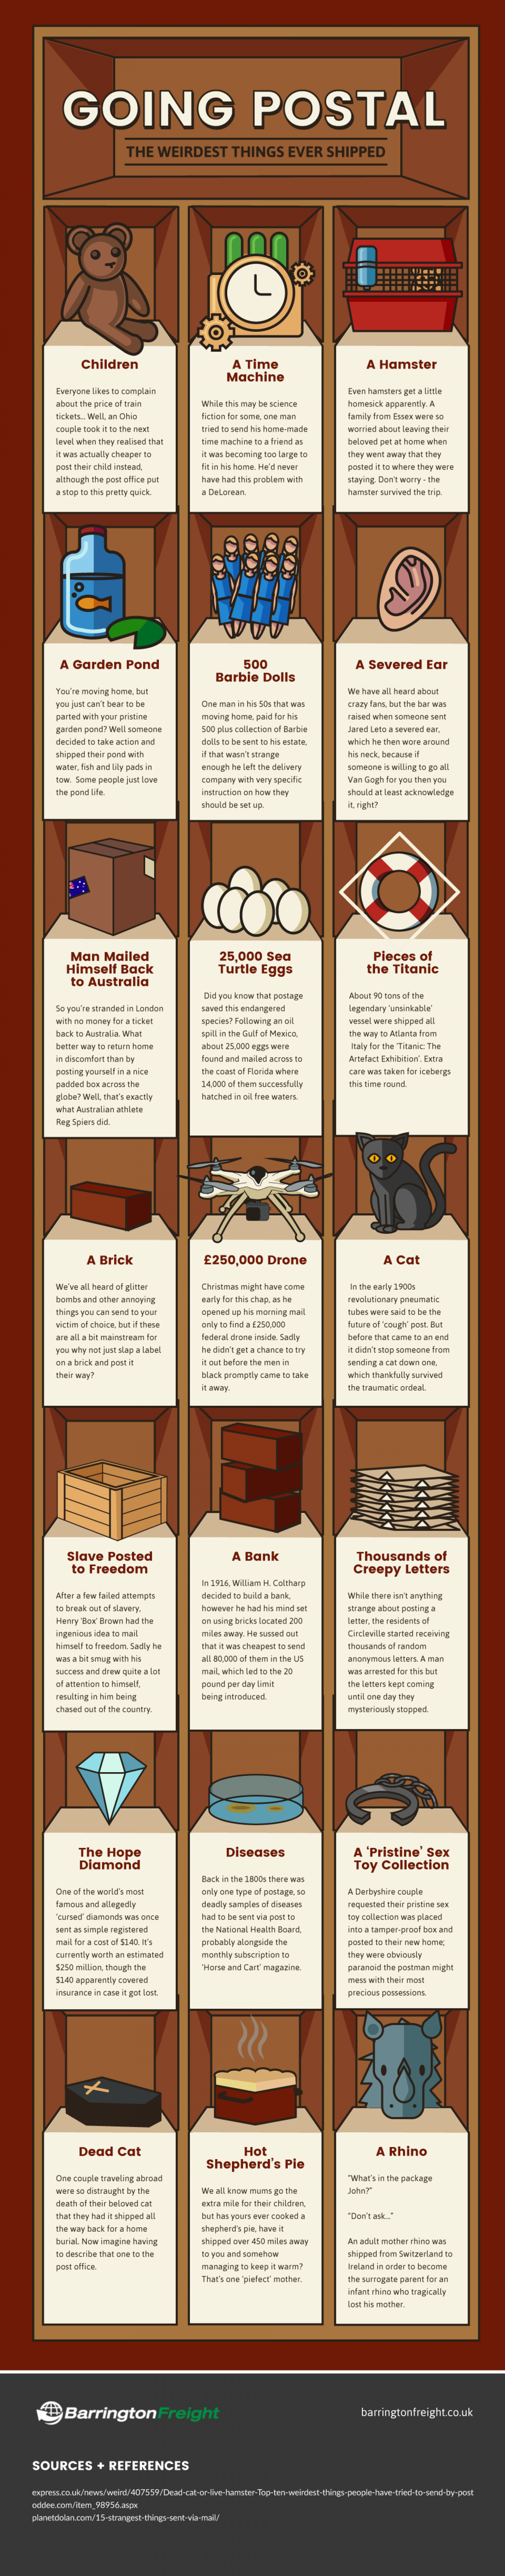 Going Postal, The Weirdest Things Ever Shipped Infographic